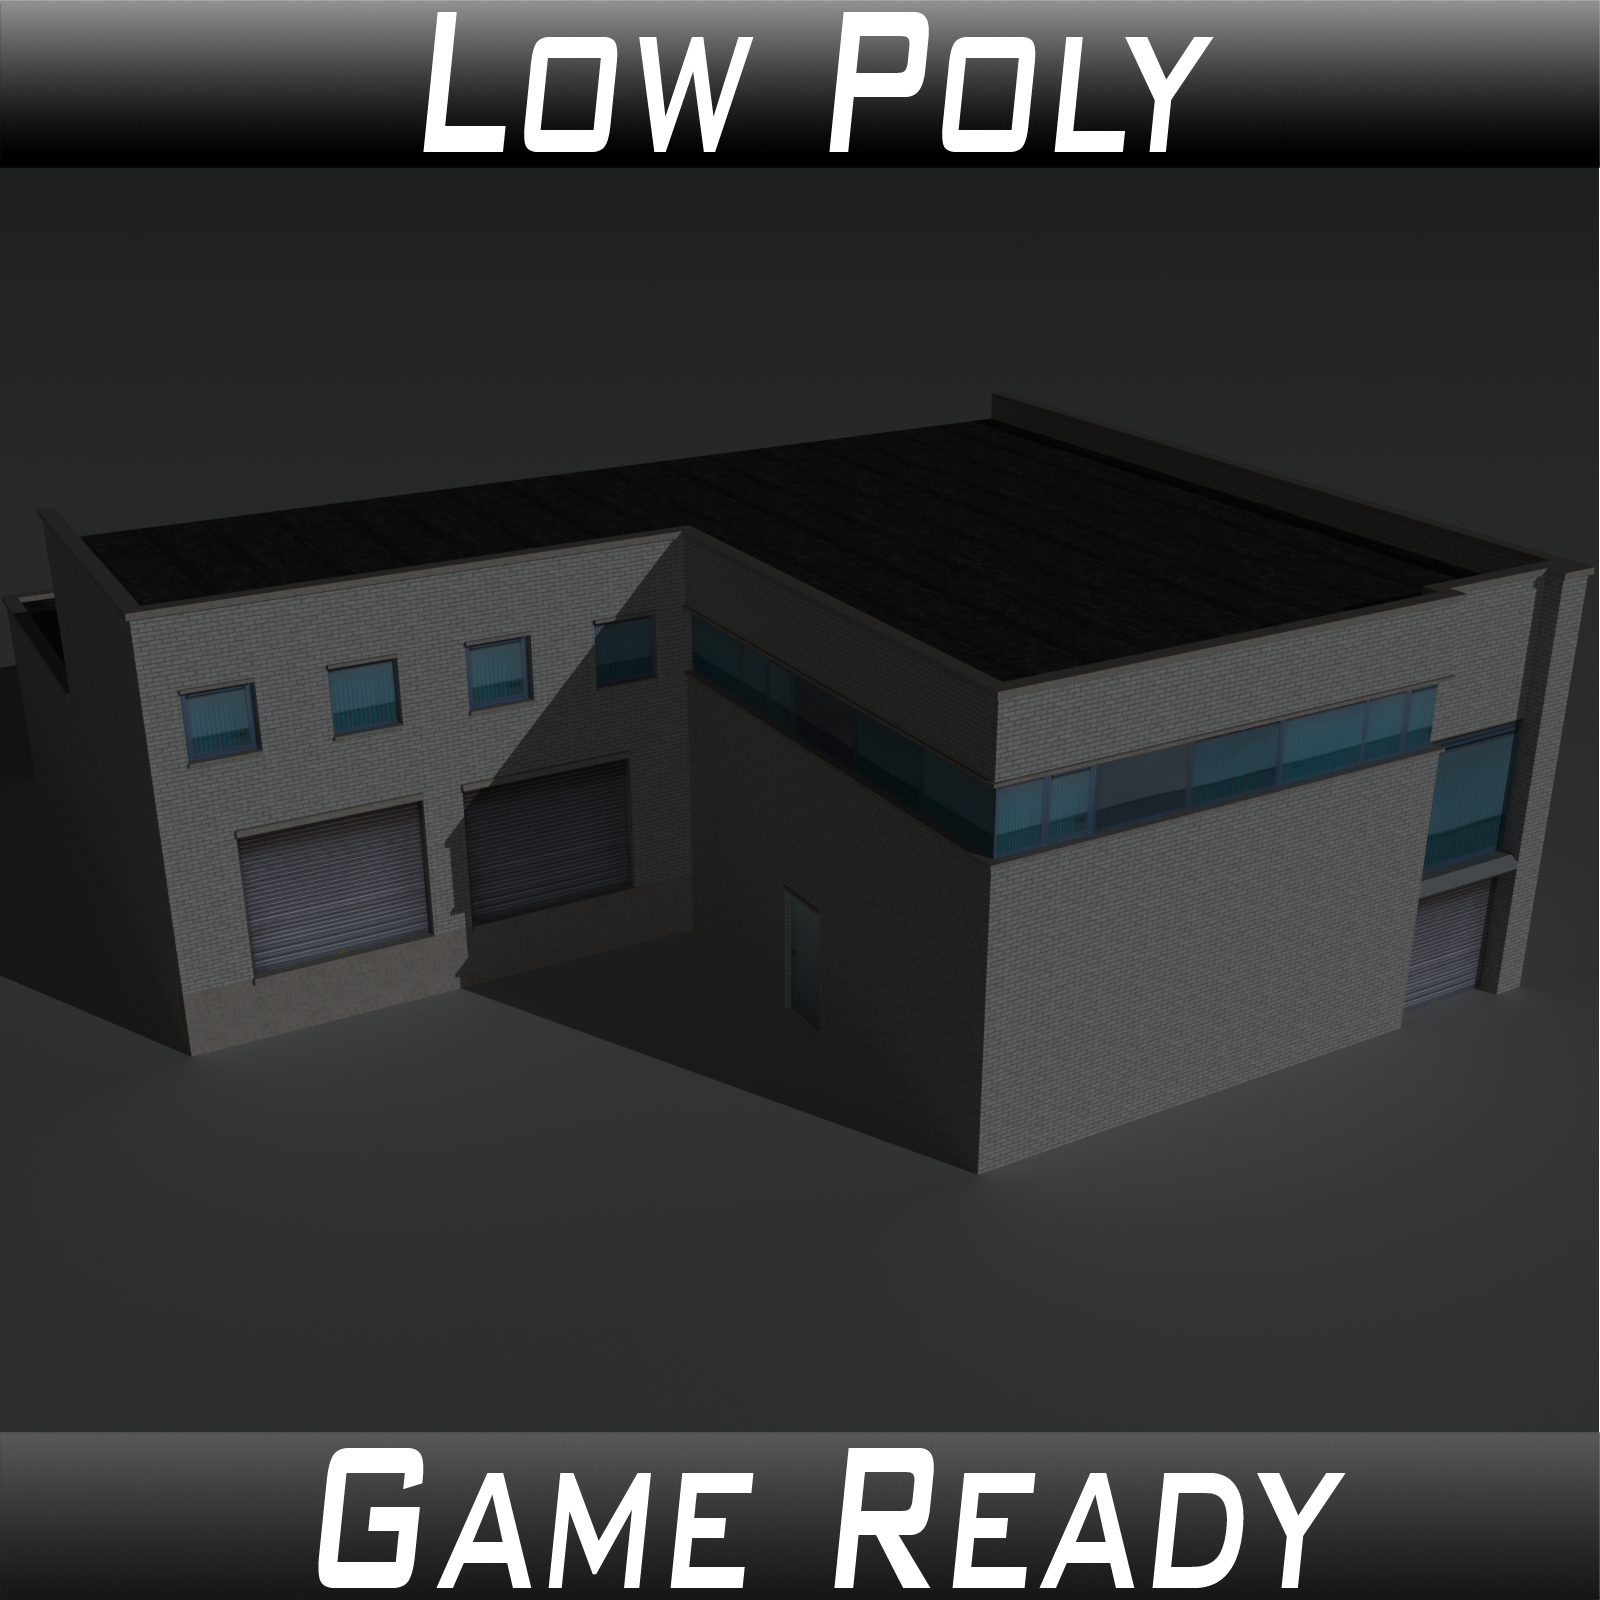 Low Poly Factory Building 16 - Extended Licence